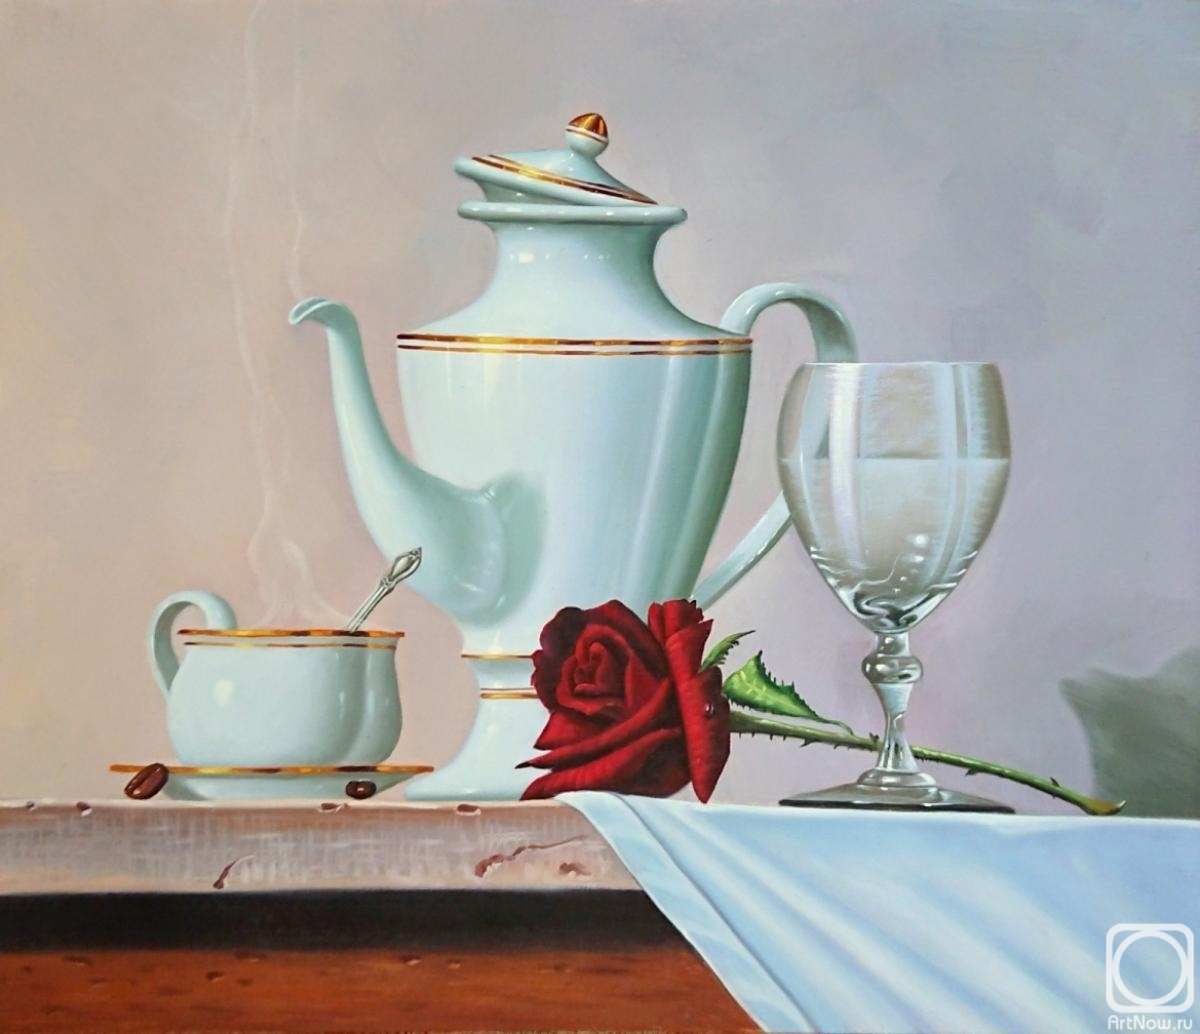 Smorodinov Ruslan. Still life with rose